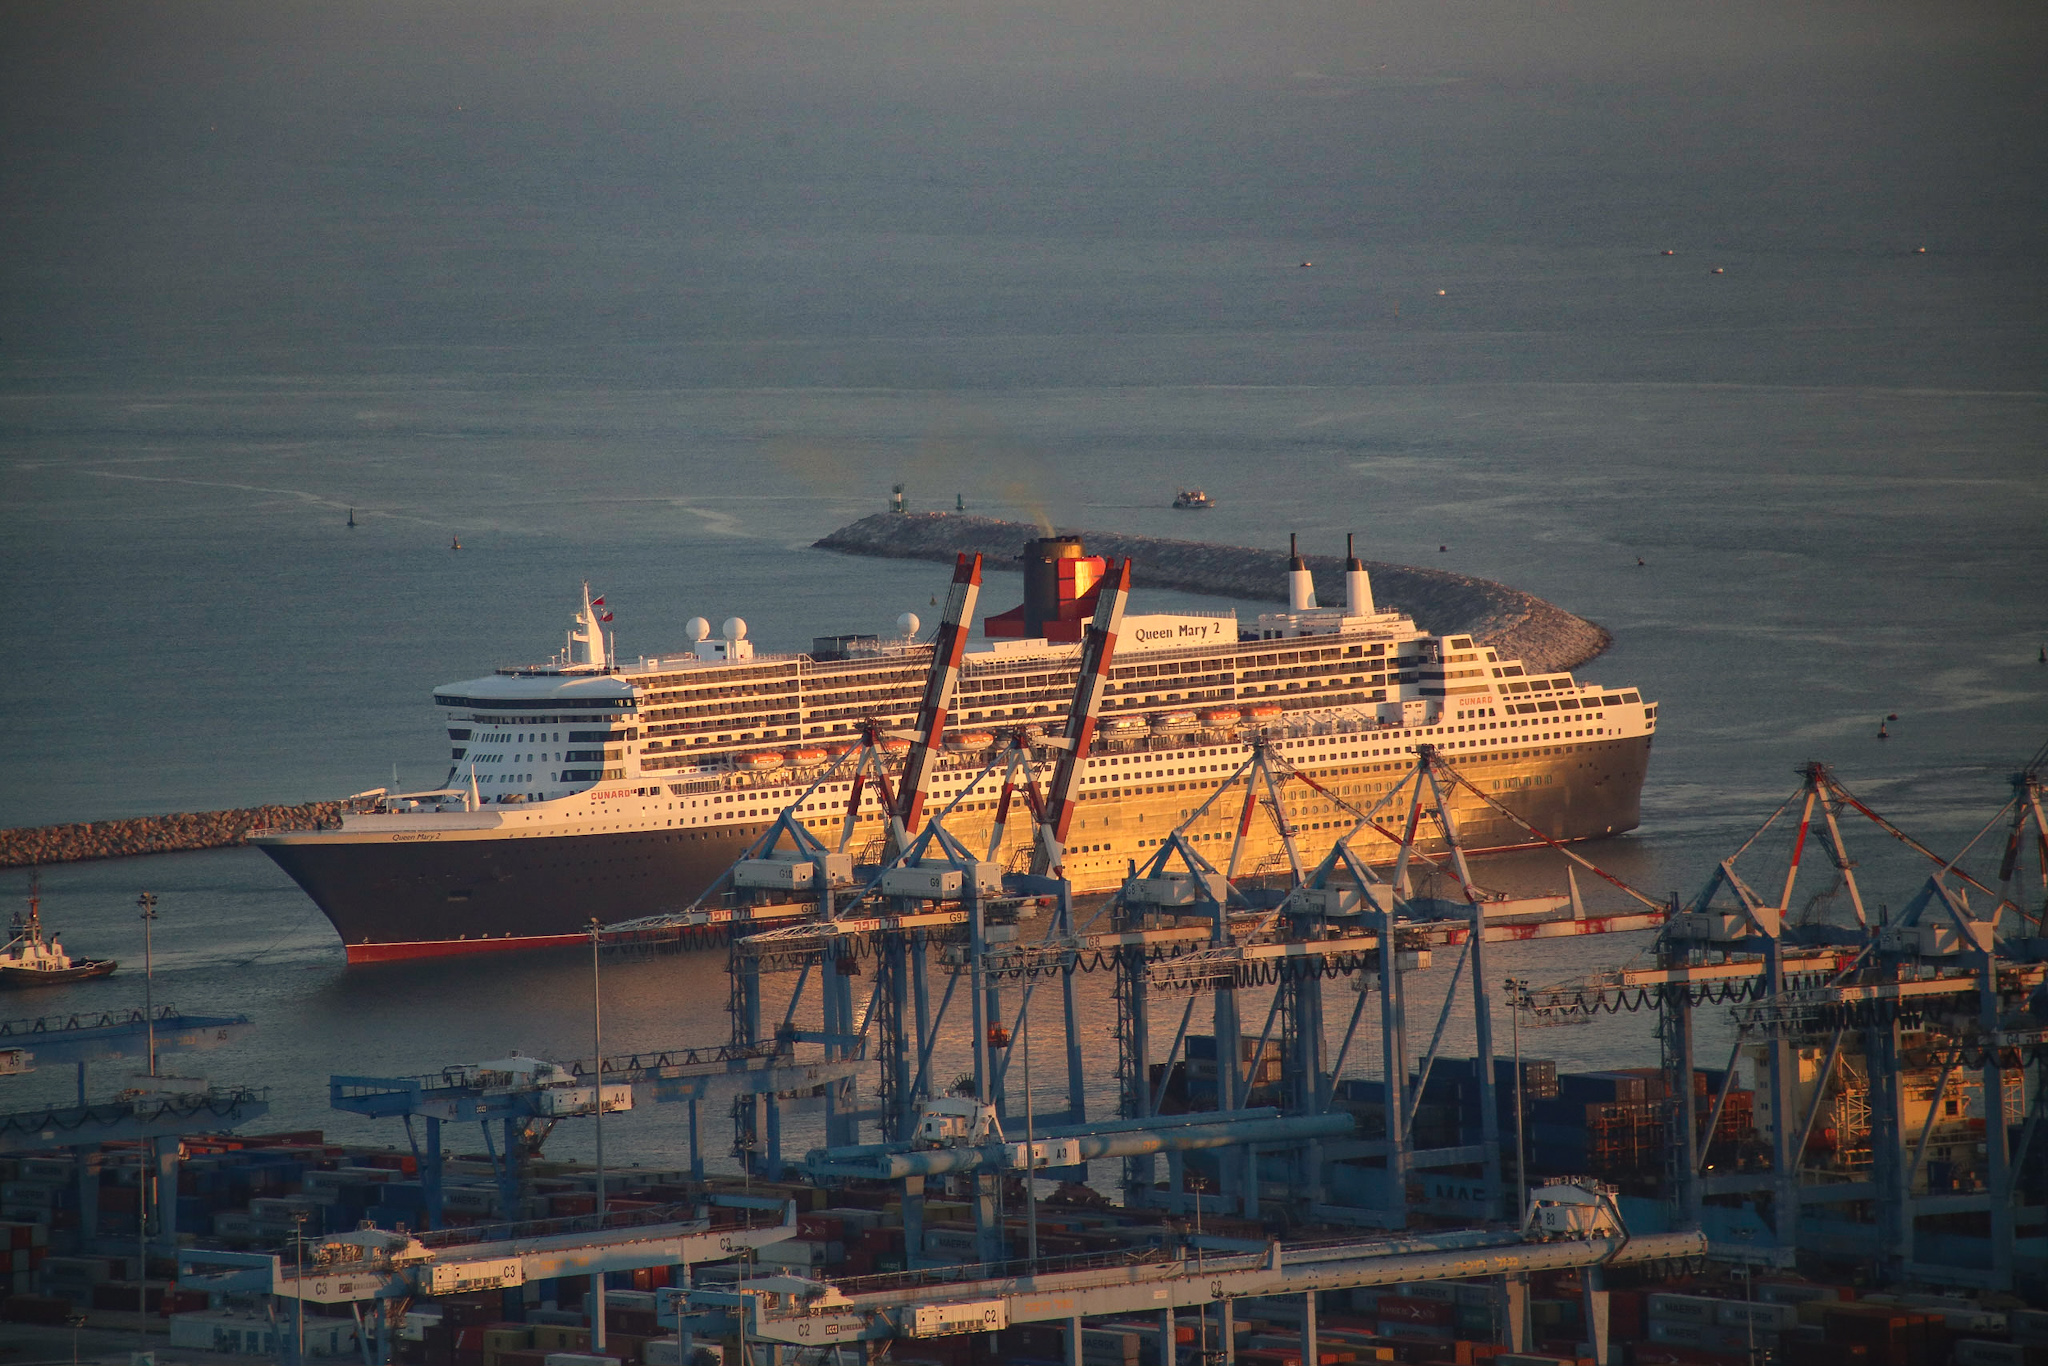 Cruise Market: The luxury cruise liner Queen Mary 2